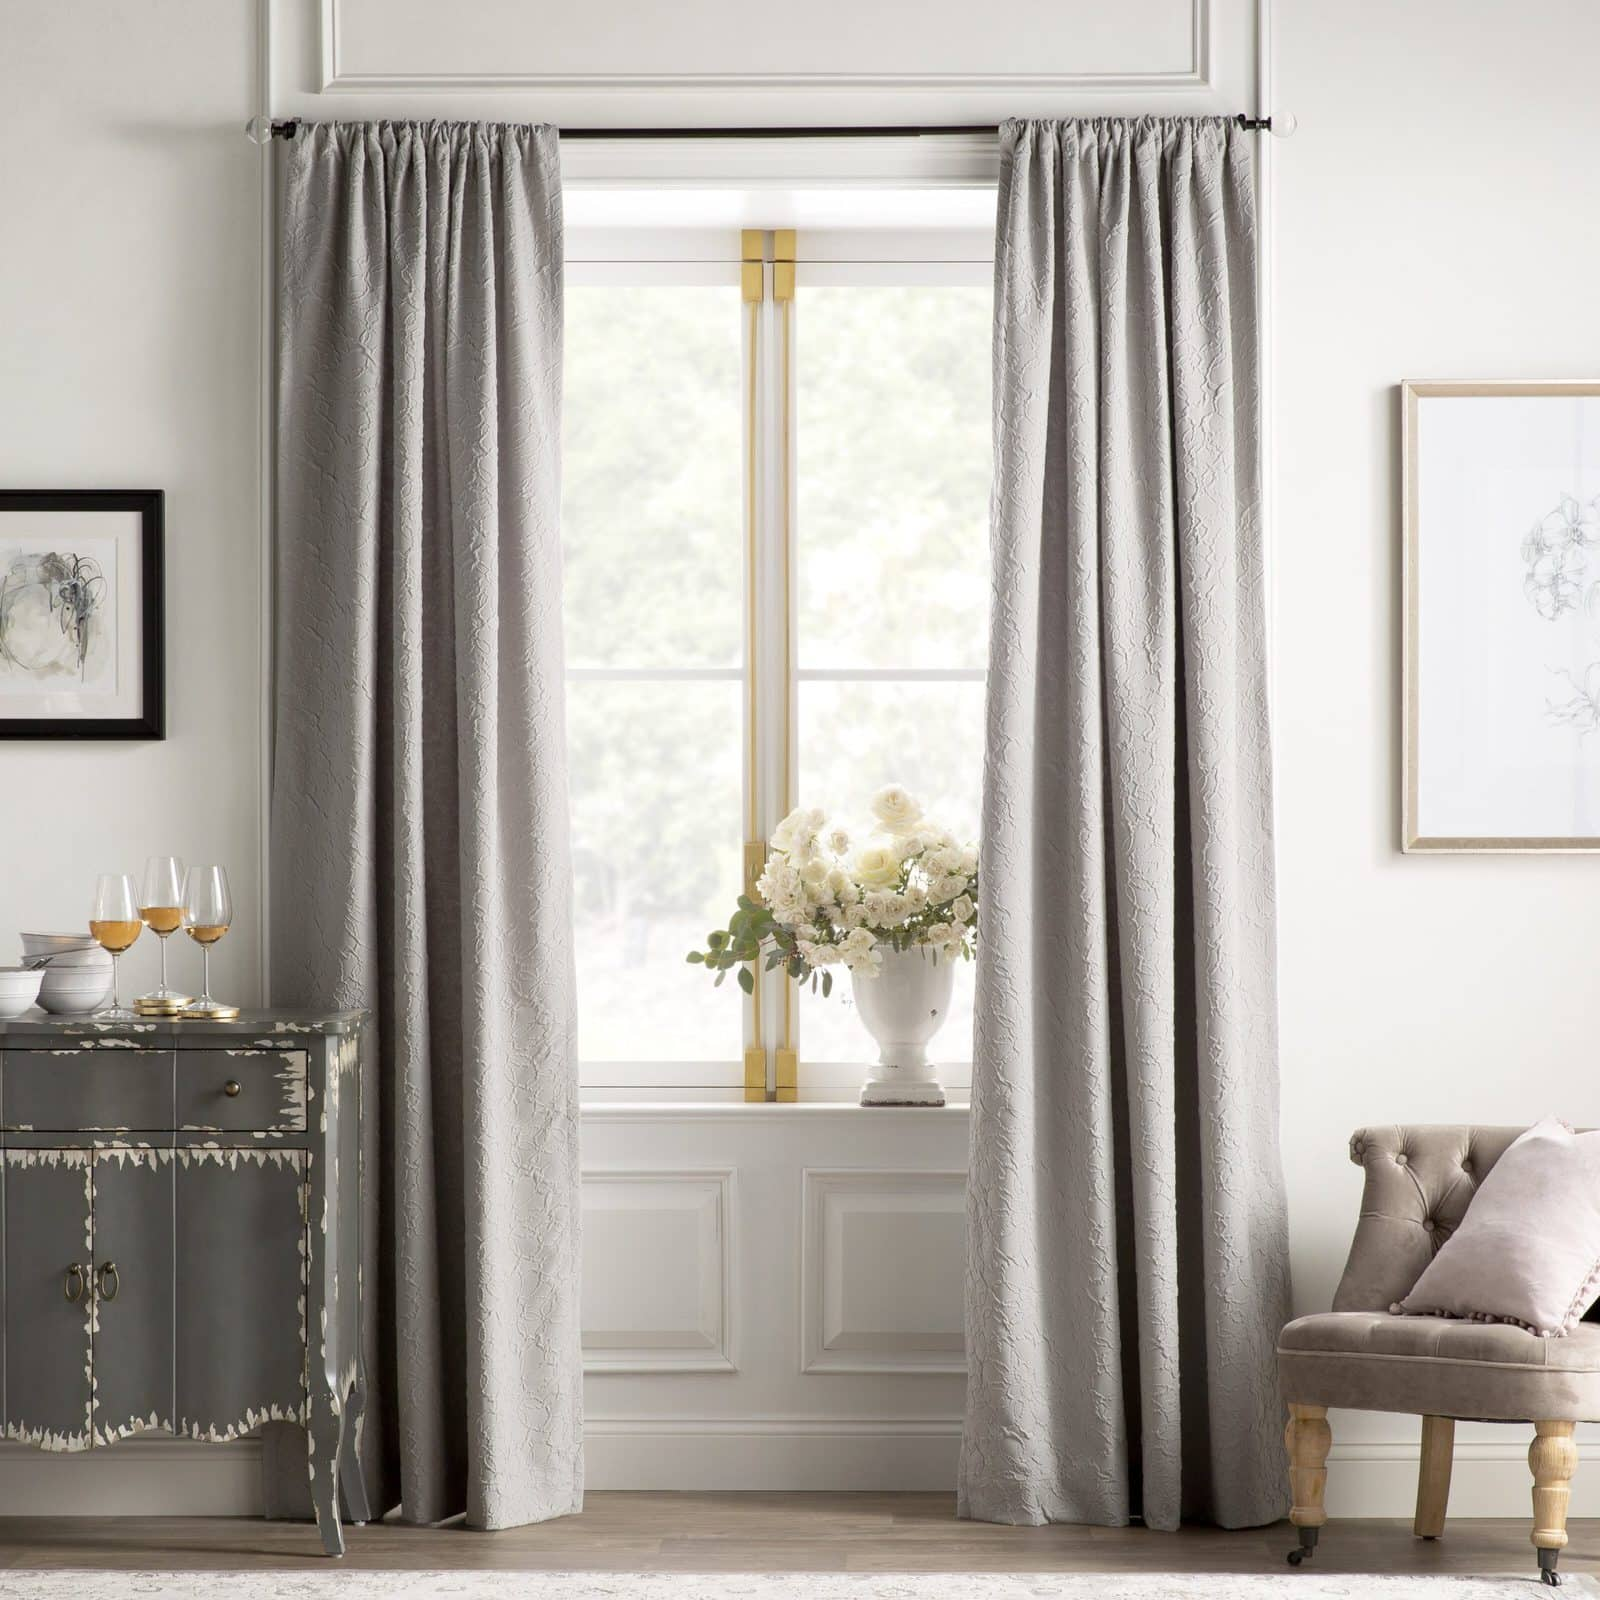 French Country Chic: Grey Embellished Curtains